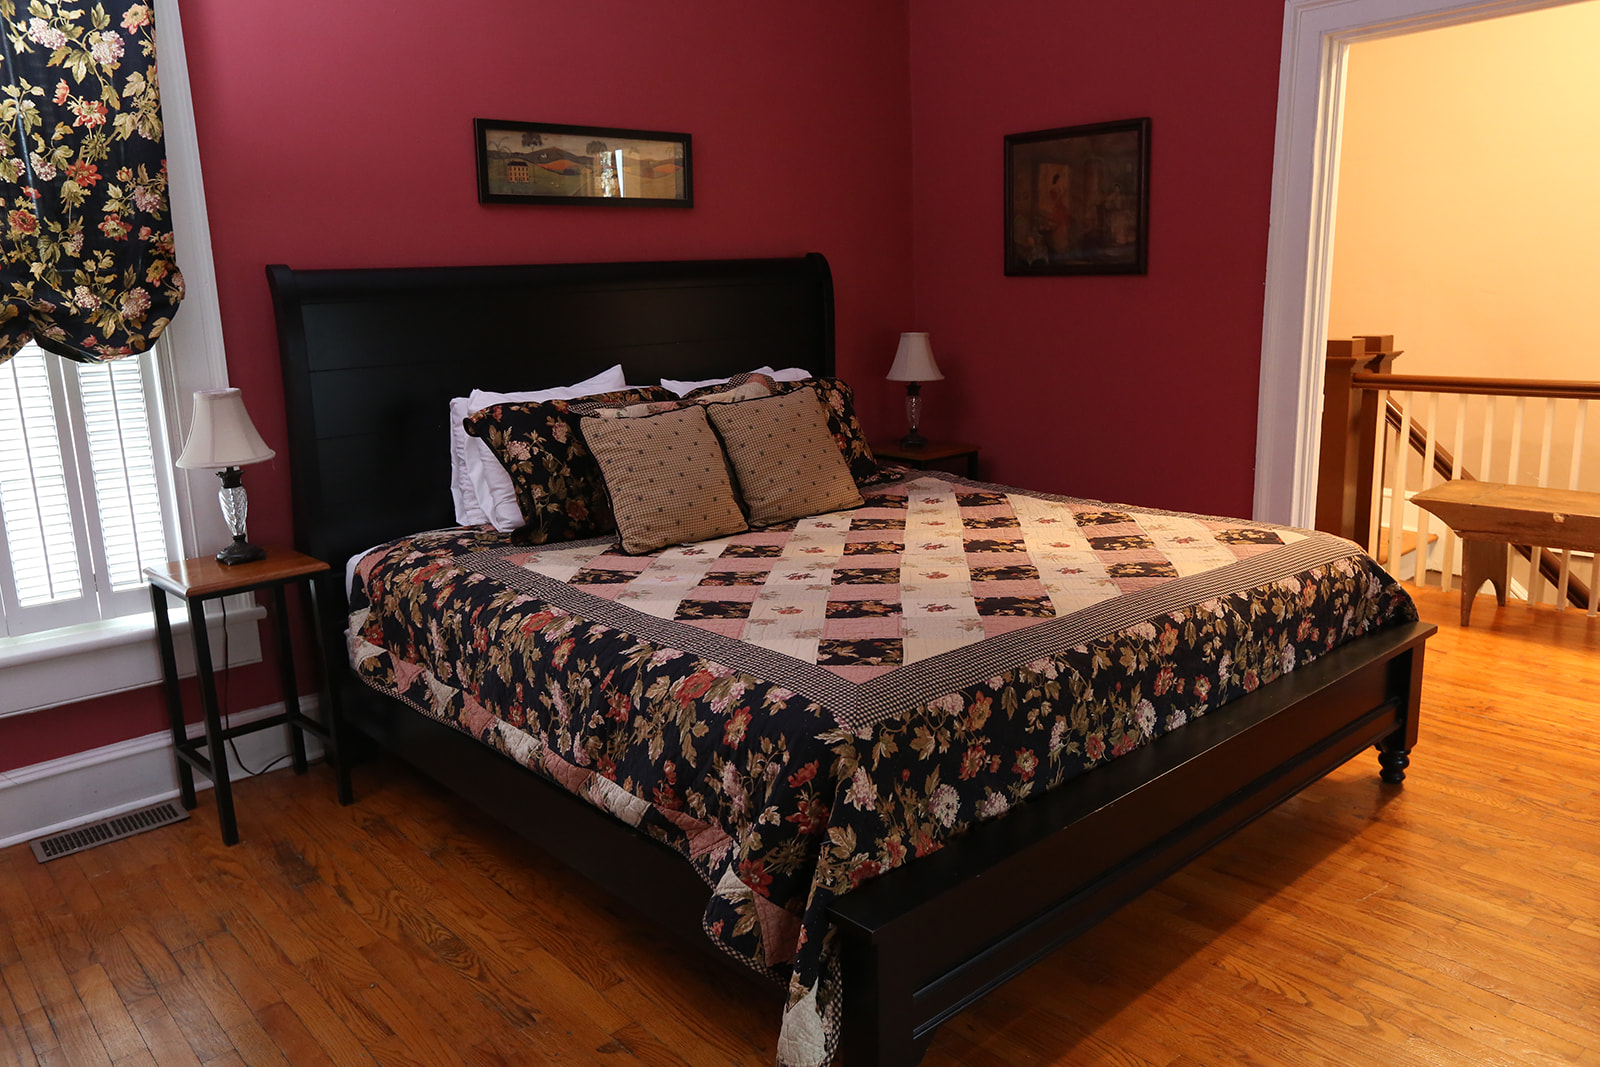 the dicey's cottage Suite room with a large bed, lamps and decorative paintings on the wall